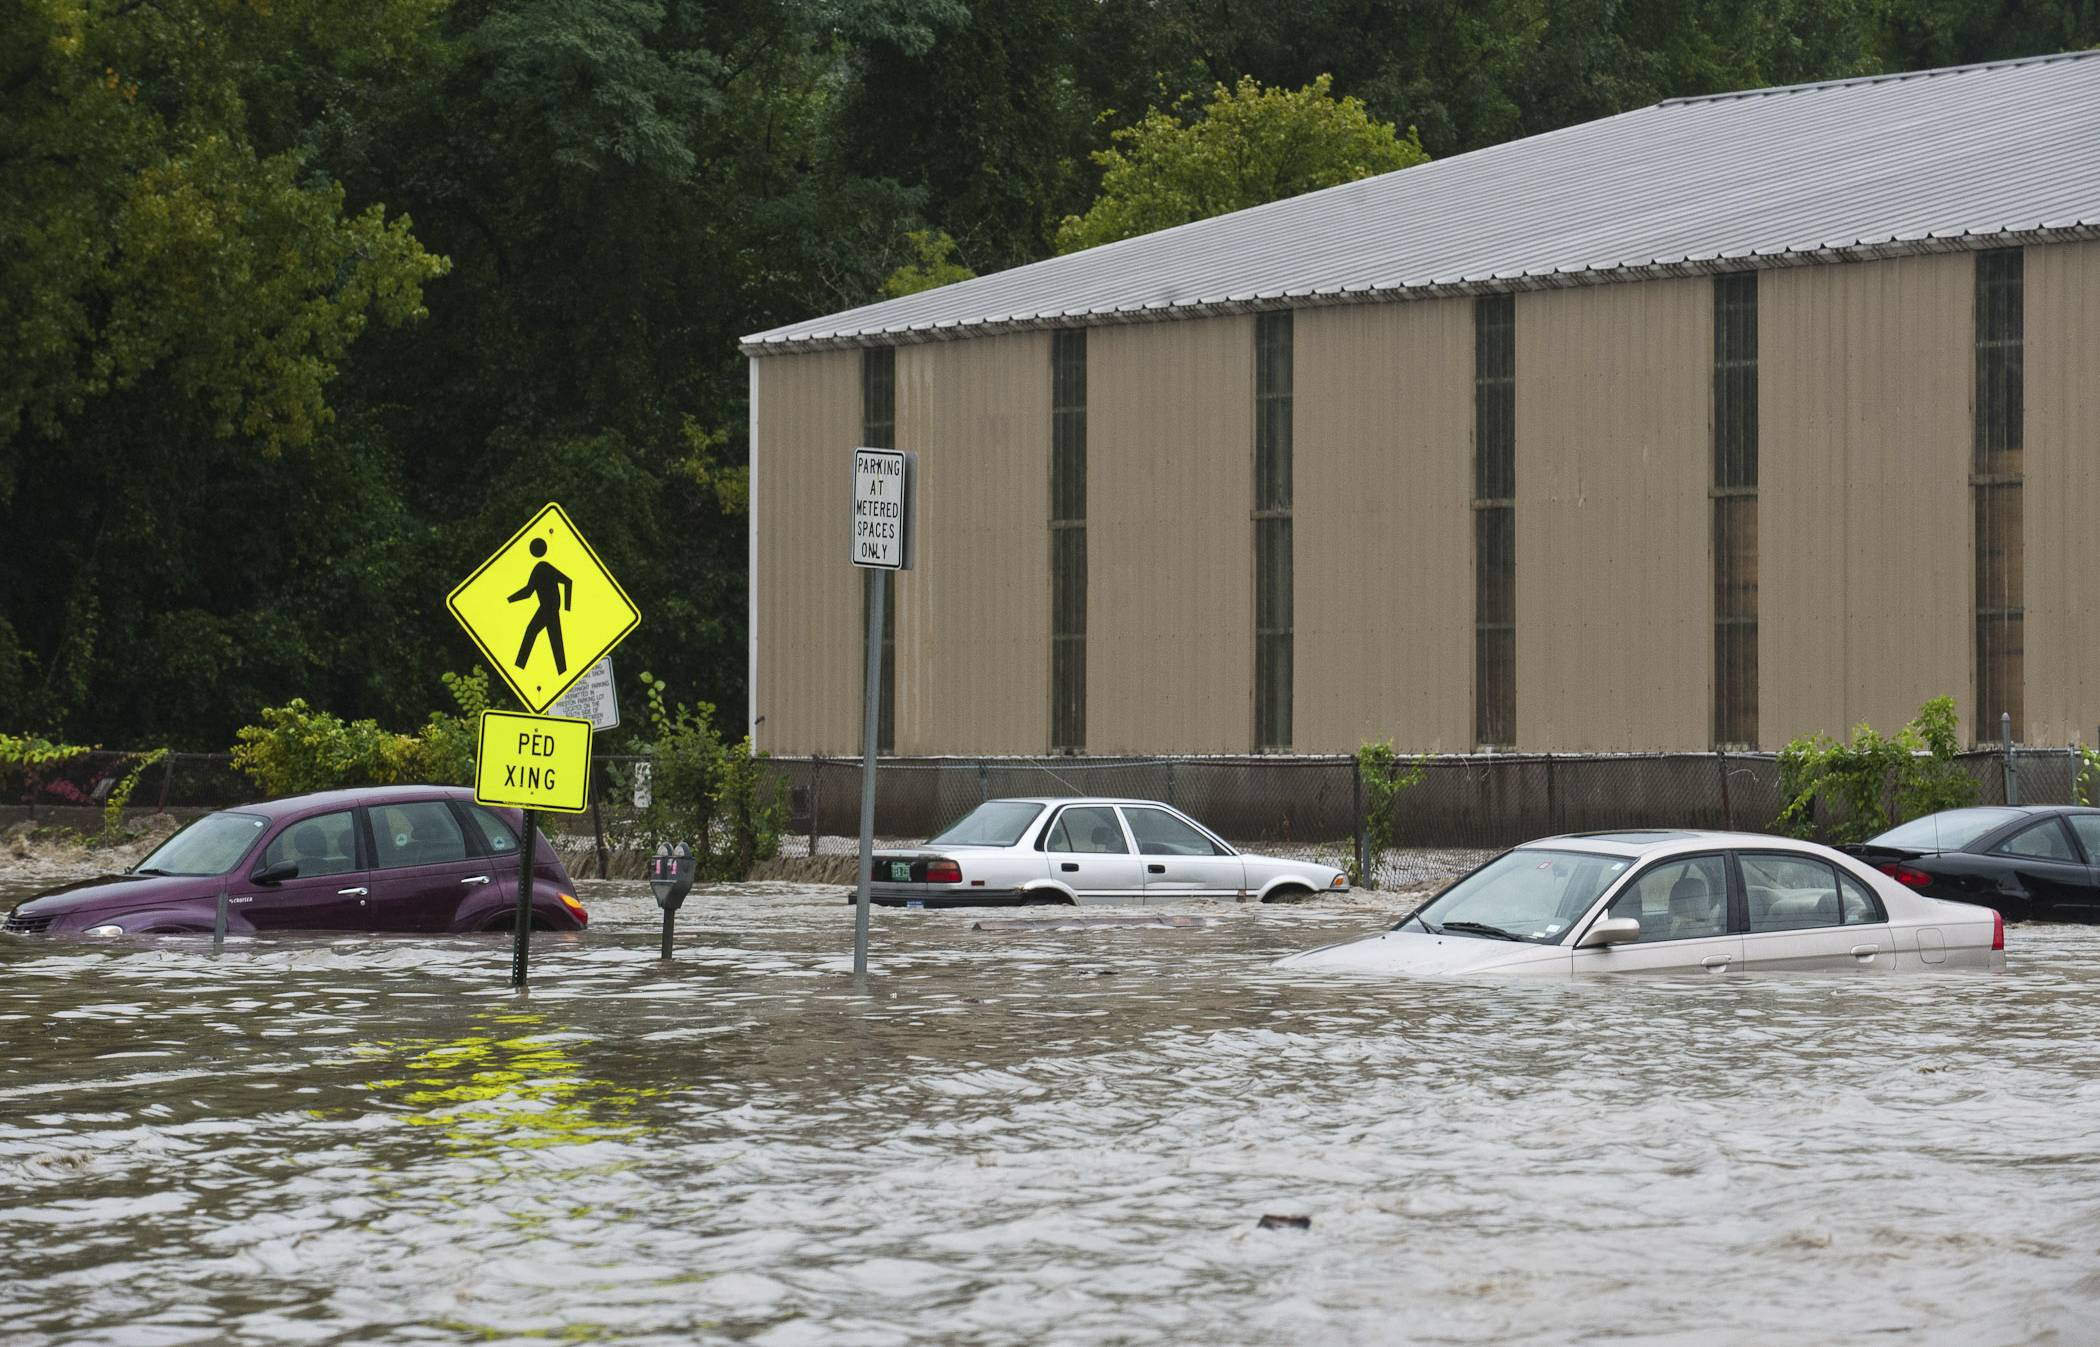 Cars in the parking lot at the bottom of Canal Street in Brattleboro, Vt., are submerged nearly to their windows by the flooding Whetstone Brook  on Sunday.